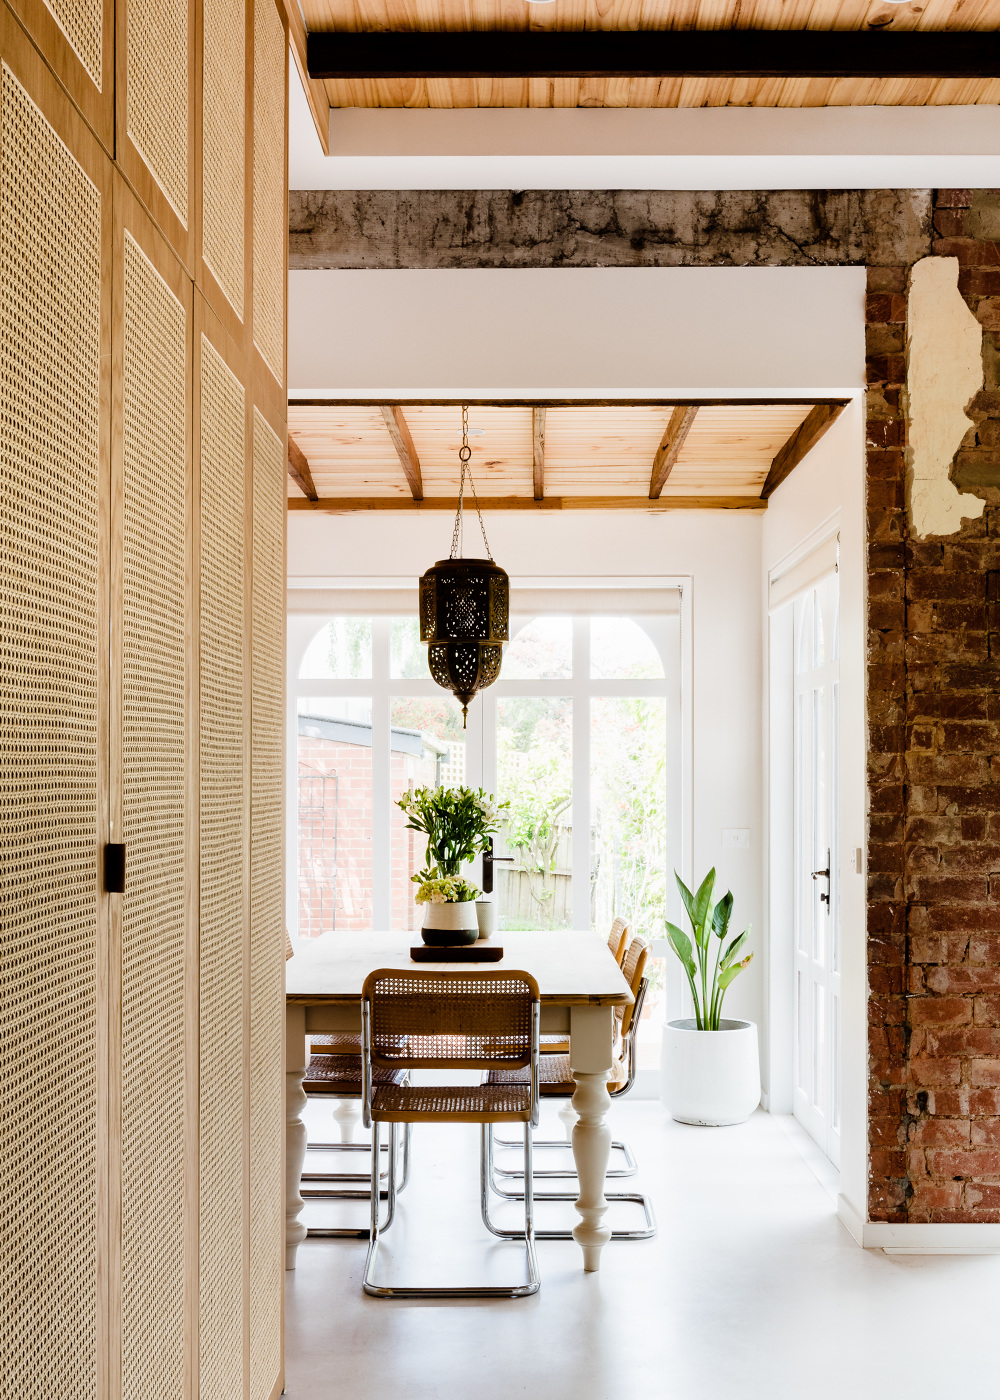 GABBE Interior Design - Amelia Stanwix Photography • Melbourne based ...